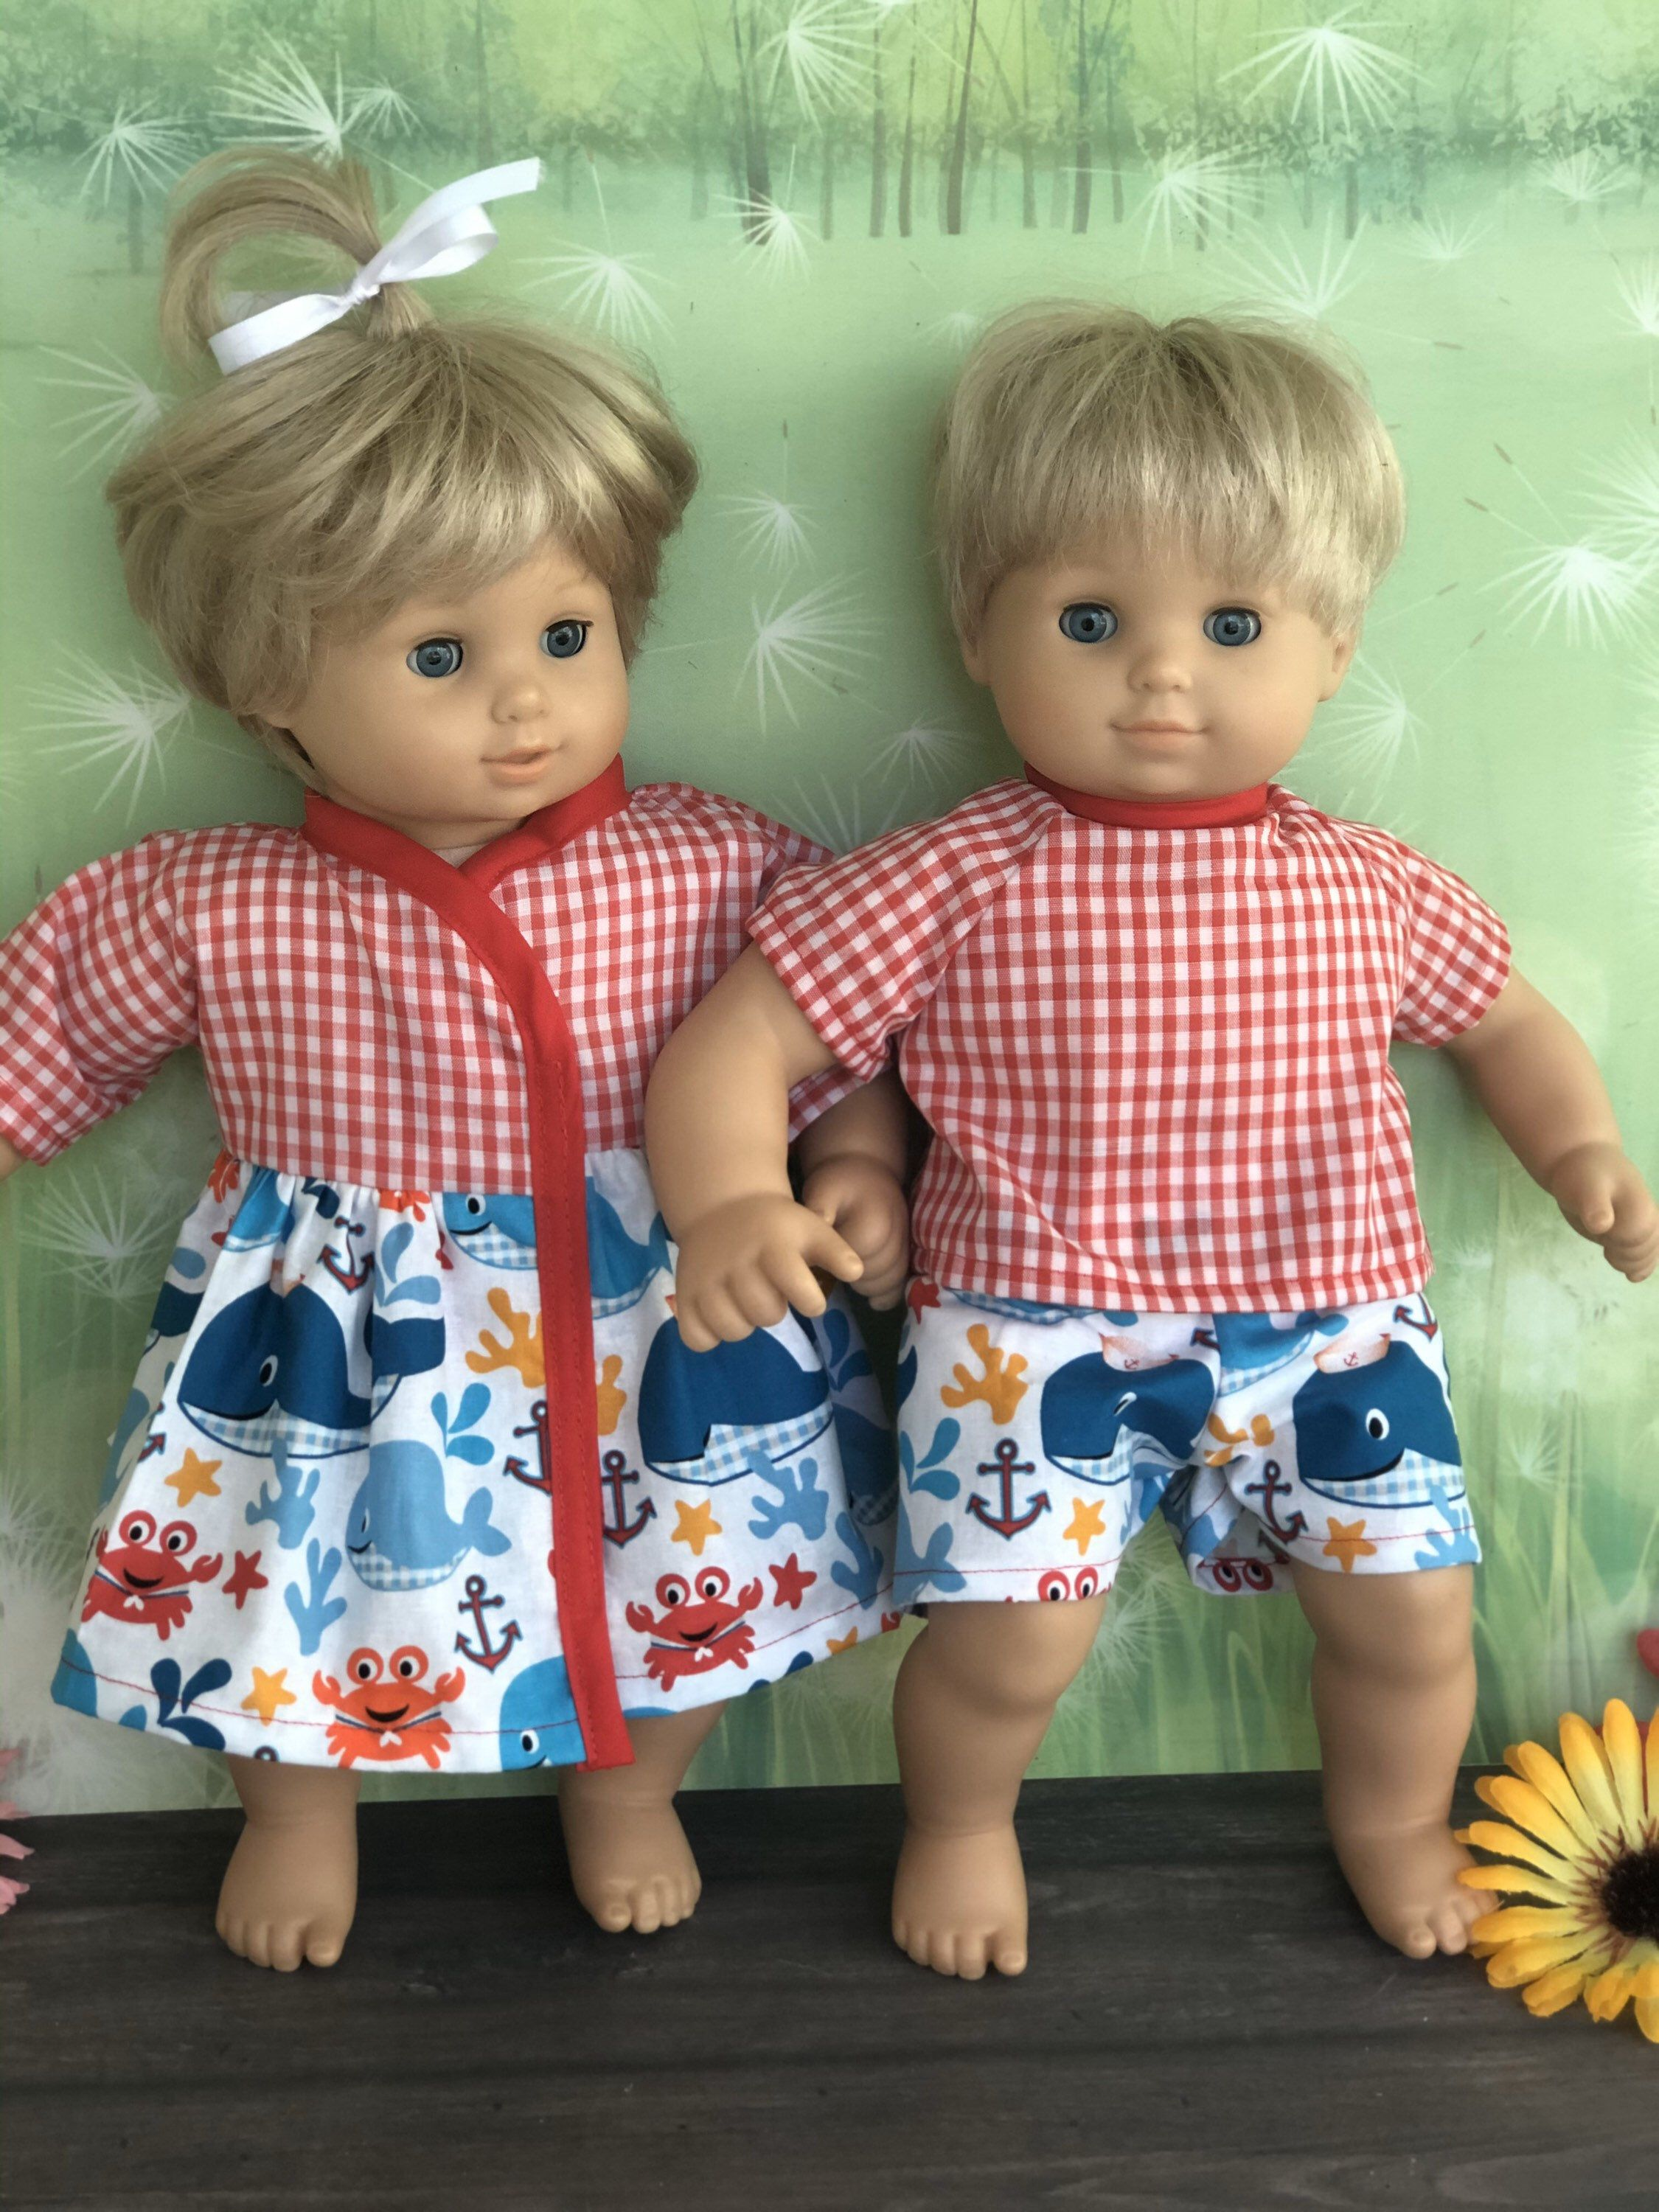 Matching Boy And Girl Doll Clothes 15 Twins Doll Clothes In 2020 Girl Doll Clothes Baby Doll Clothes Twin Dolls